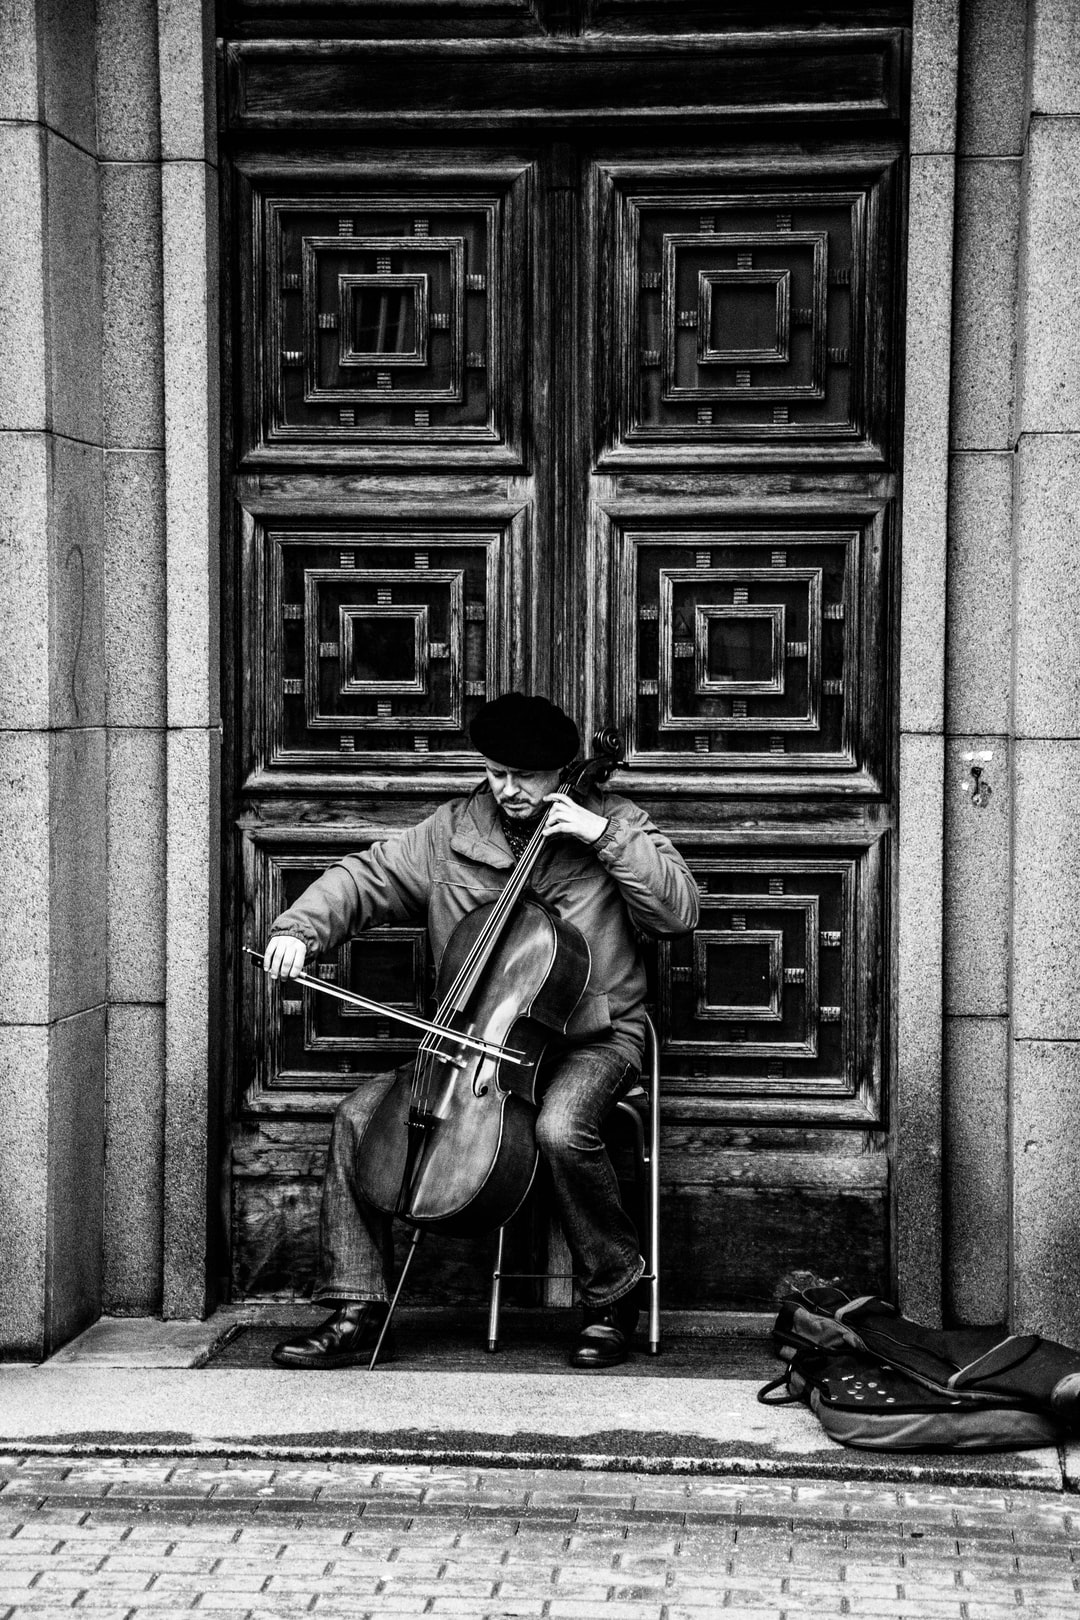 Music on the streets of Riga